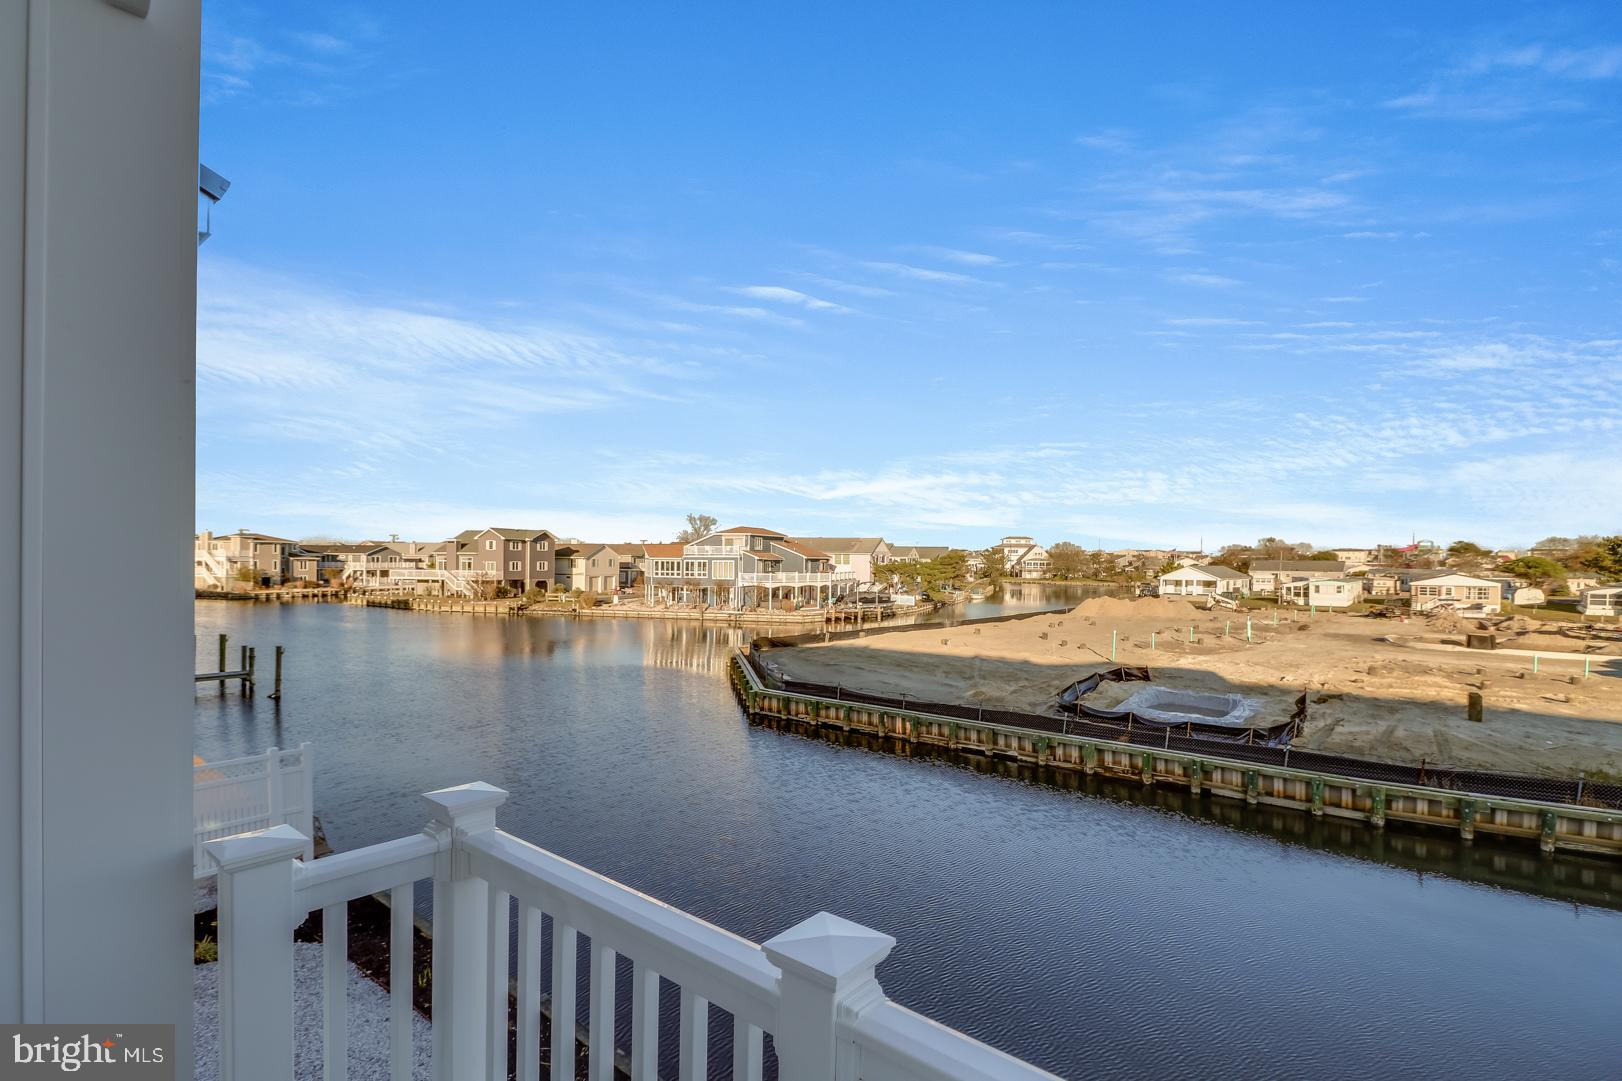 Welcome to Lighthouse View!  Six waterfront luxury townhomes  just a half mile to the ocean in Fenwick Island!  Featuring luxury vinyl plank flooring, quartz counters, KitchenAid and Whirlpool stainless appliances, tile showers, and more luxury upgrades included  standard!  Walk to area restaurants, attractions, and the beach.  Floor plans feature large kitchen, great room, four bedrooms, and three and a half bathrooms.  Rooftop deck to enjoy waterviews of the Fenwick Canals, Lighthouse Cove,  and Little Assawoman Bay!  Five townhomes remain ranging from $659,900 to $729.900.  Unit 1  is an end unit and features a two car garage, gray kitchen cabinetry with white tile backsplash, and white island with quartz counters.  Start living Fenwick Beach Life Today!